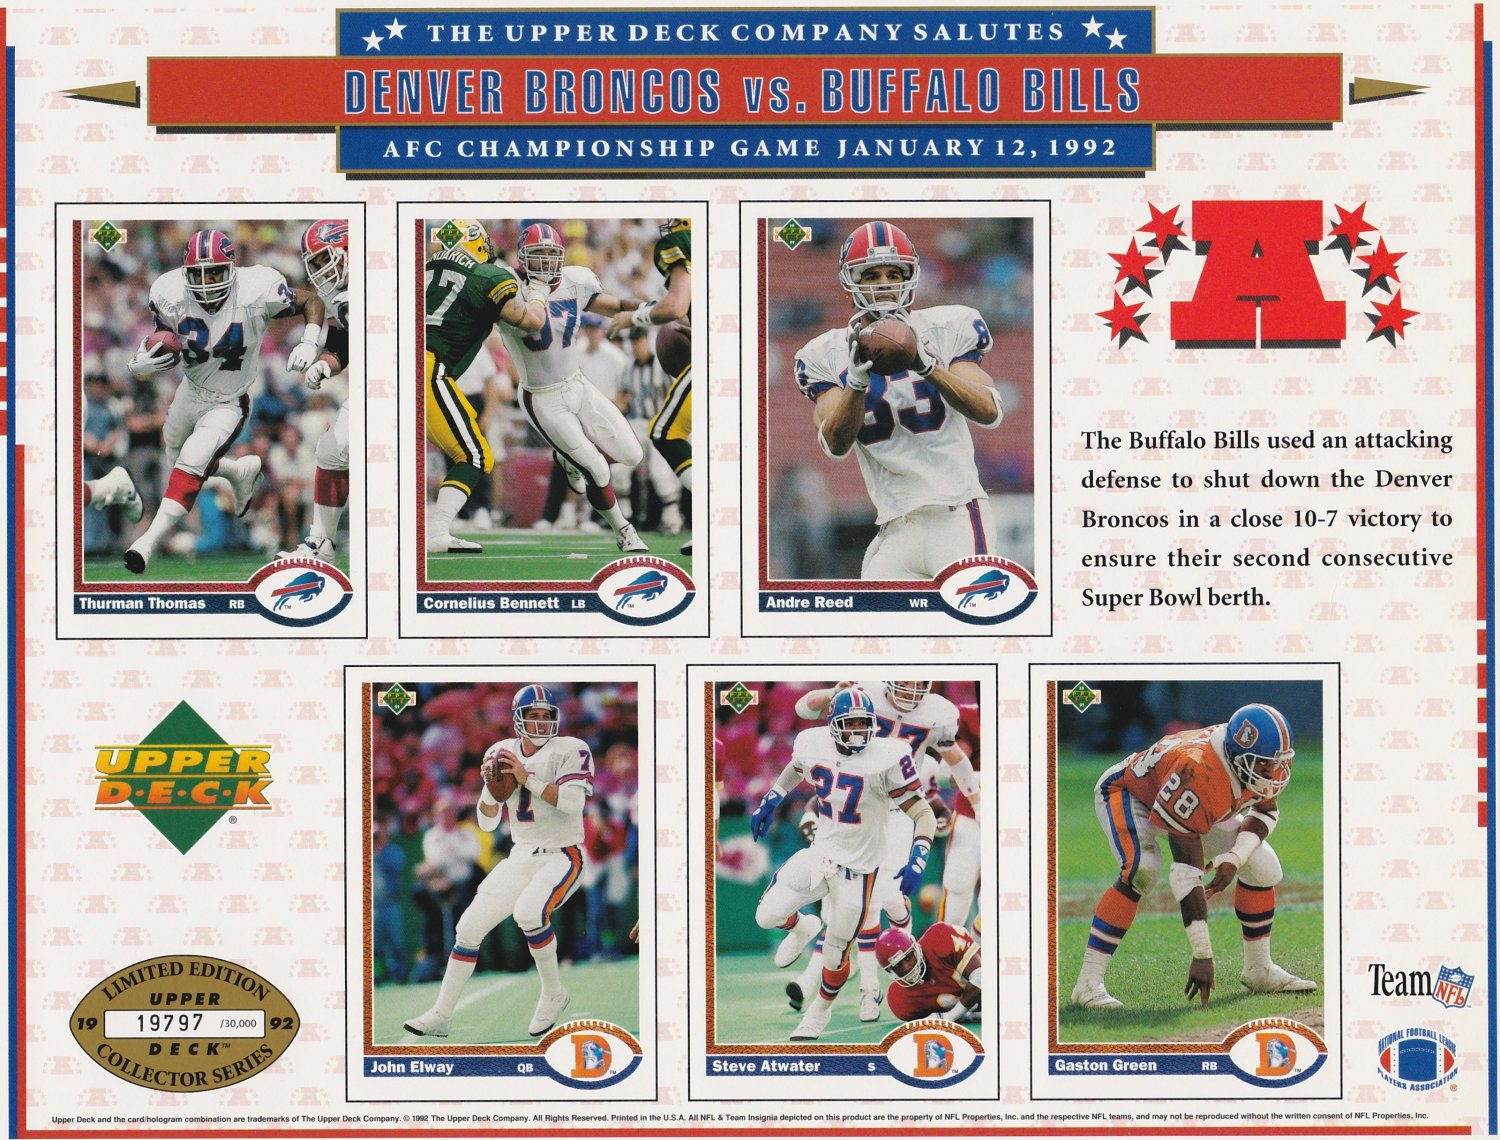 1992 Denver Broncos Vs Buffalo Bills Upper Deck Collectors Sheet